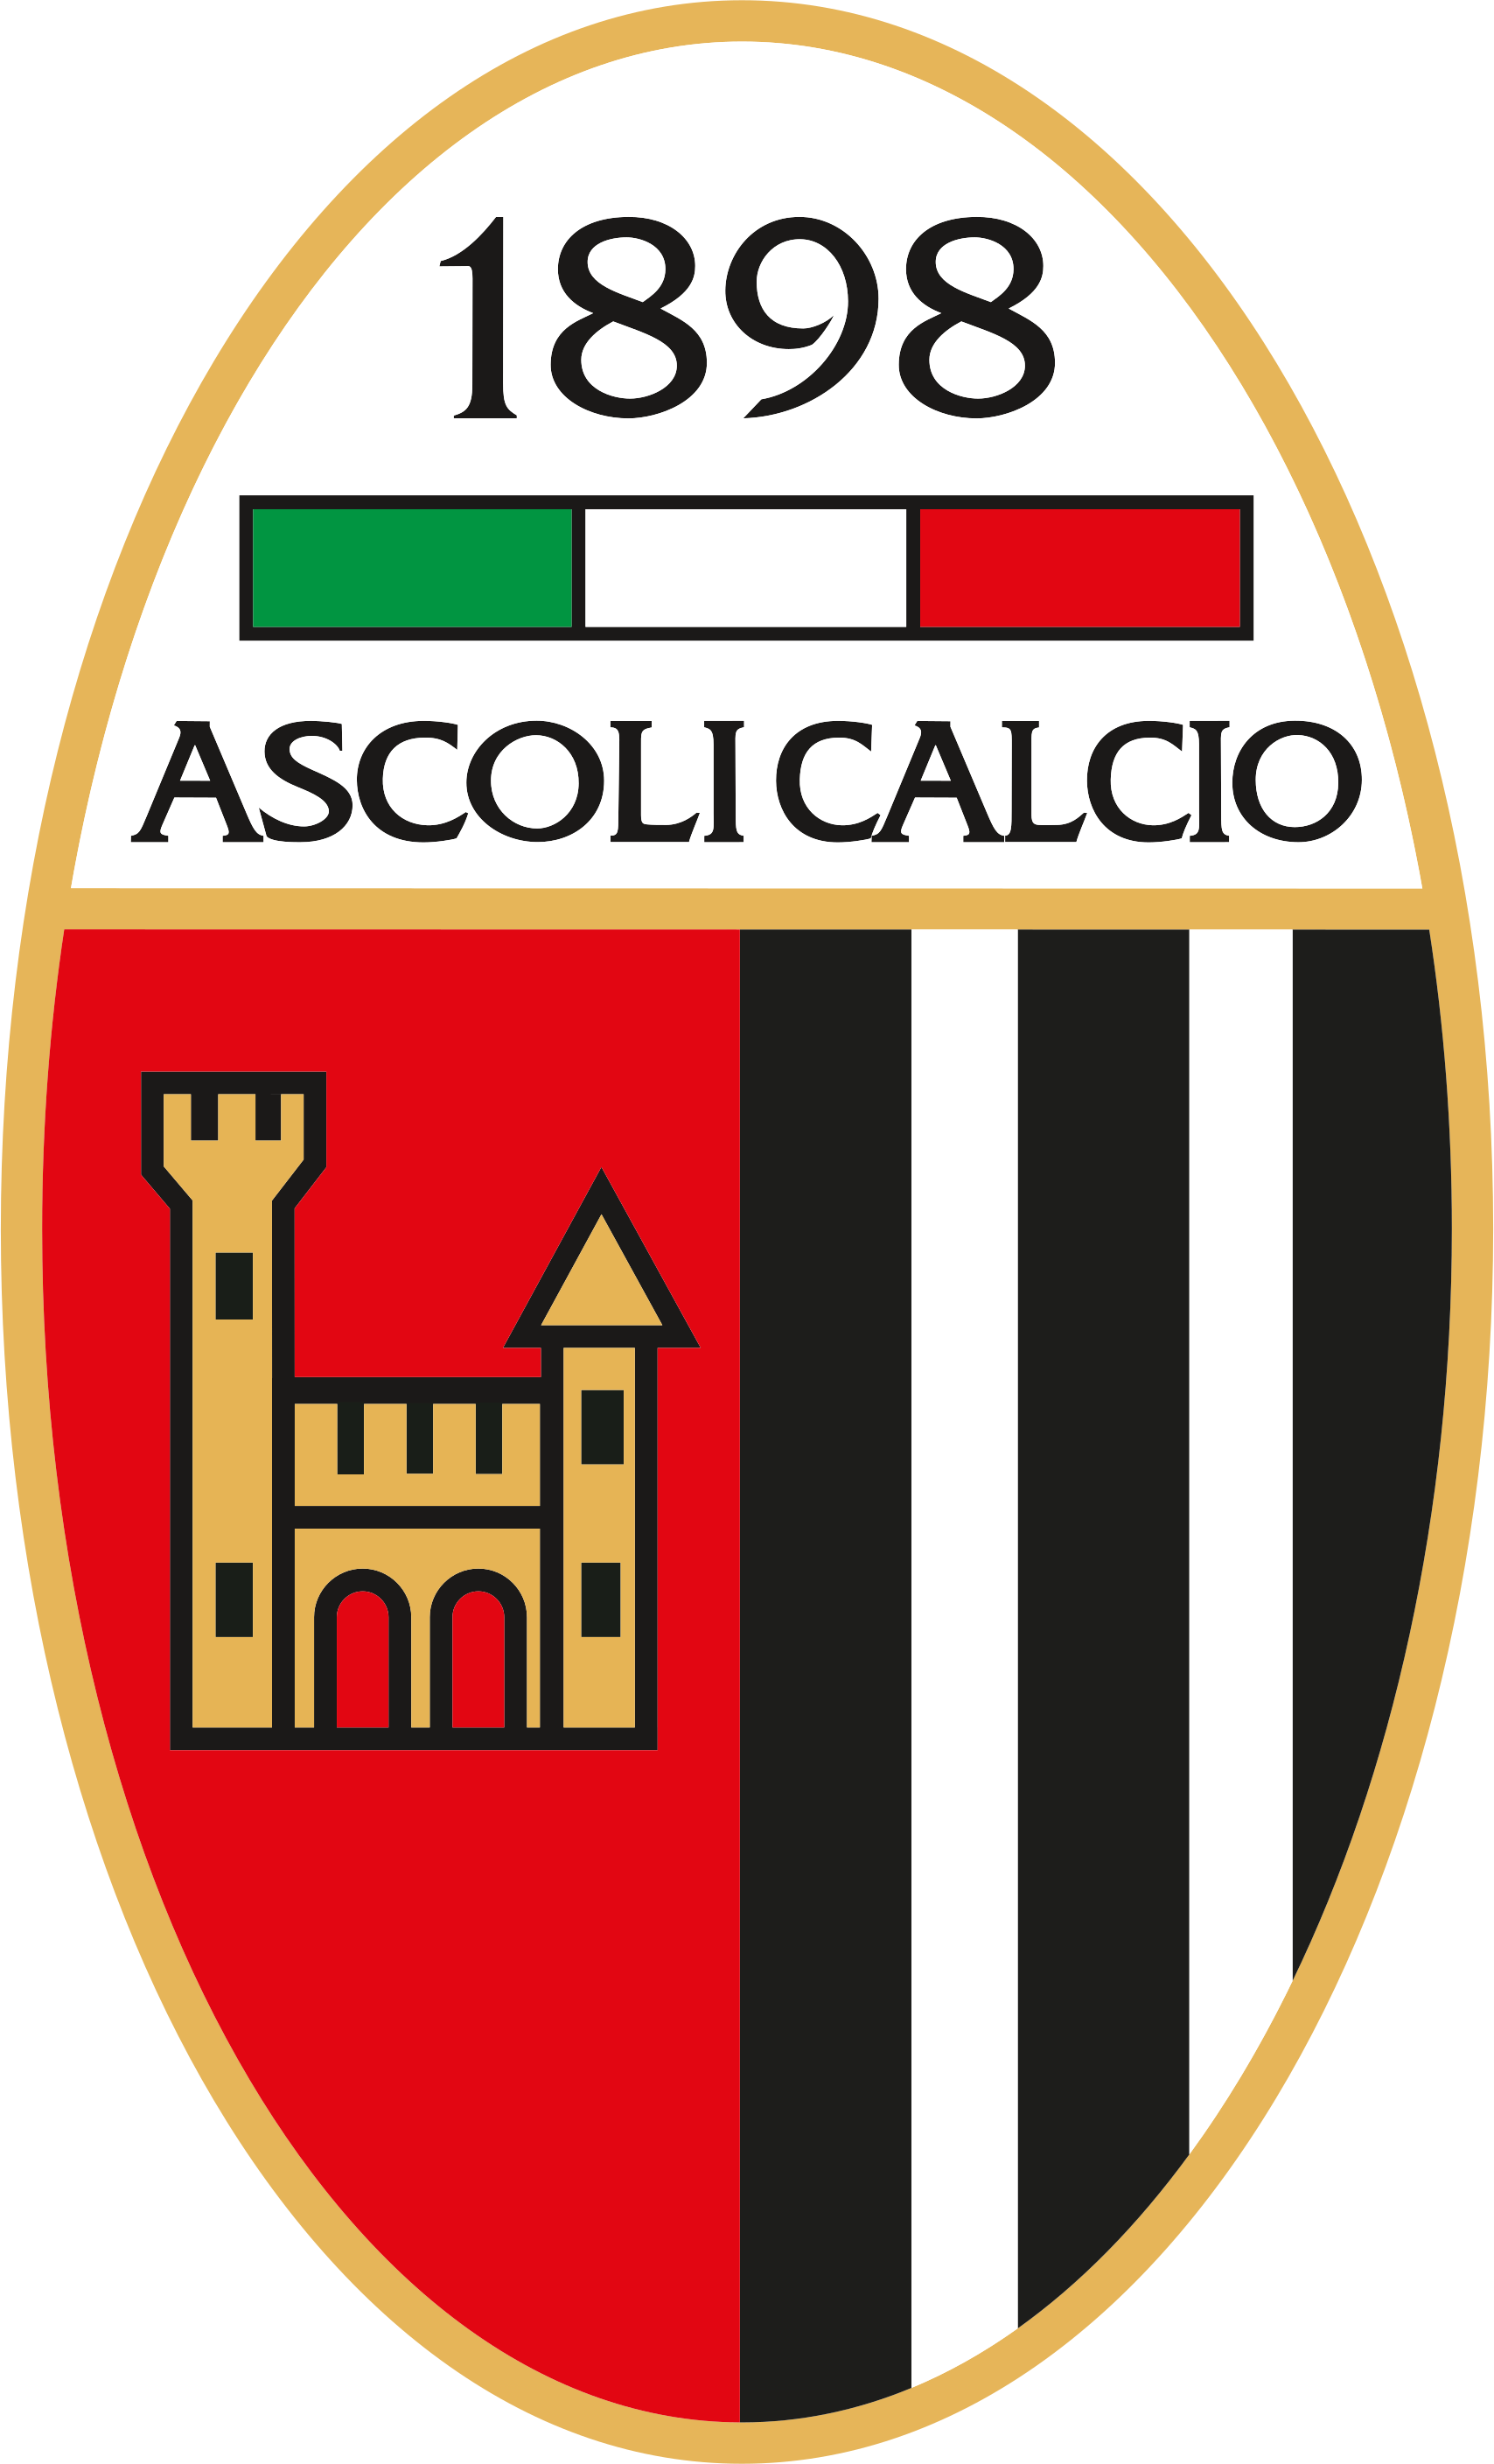 https://upload.wikimedia.org/wikipedia/it/d/df/Ascoli_Calcio_FC_1898.png